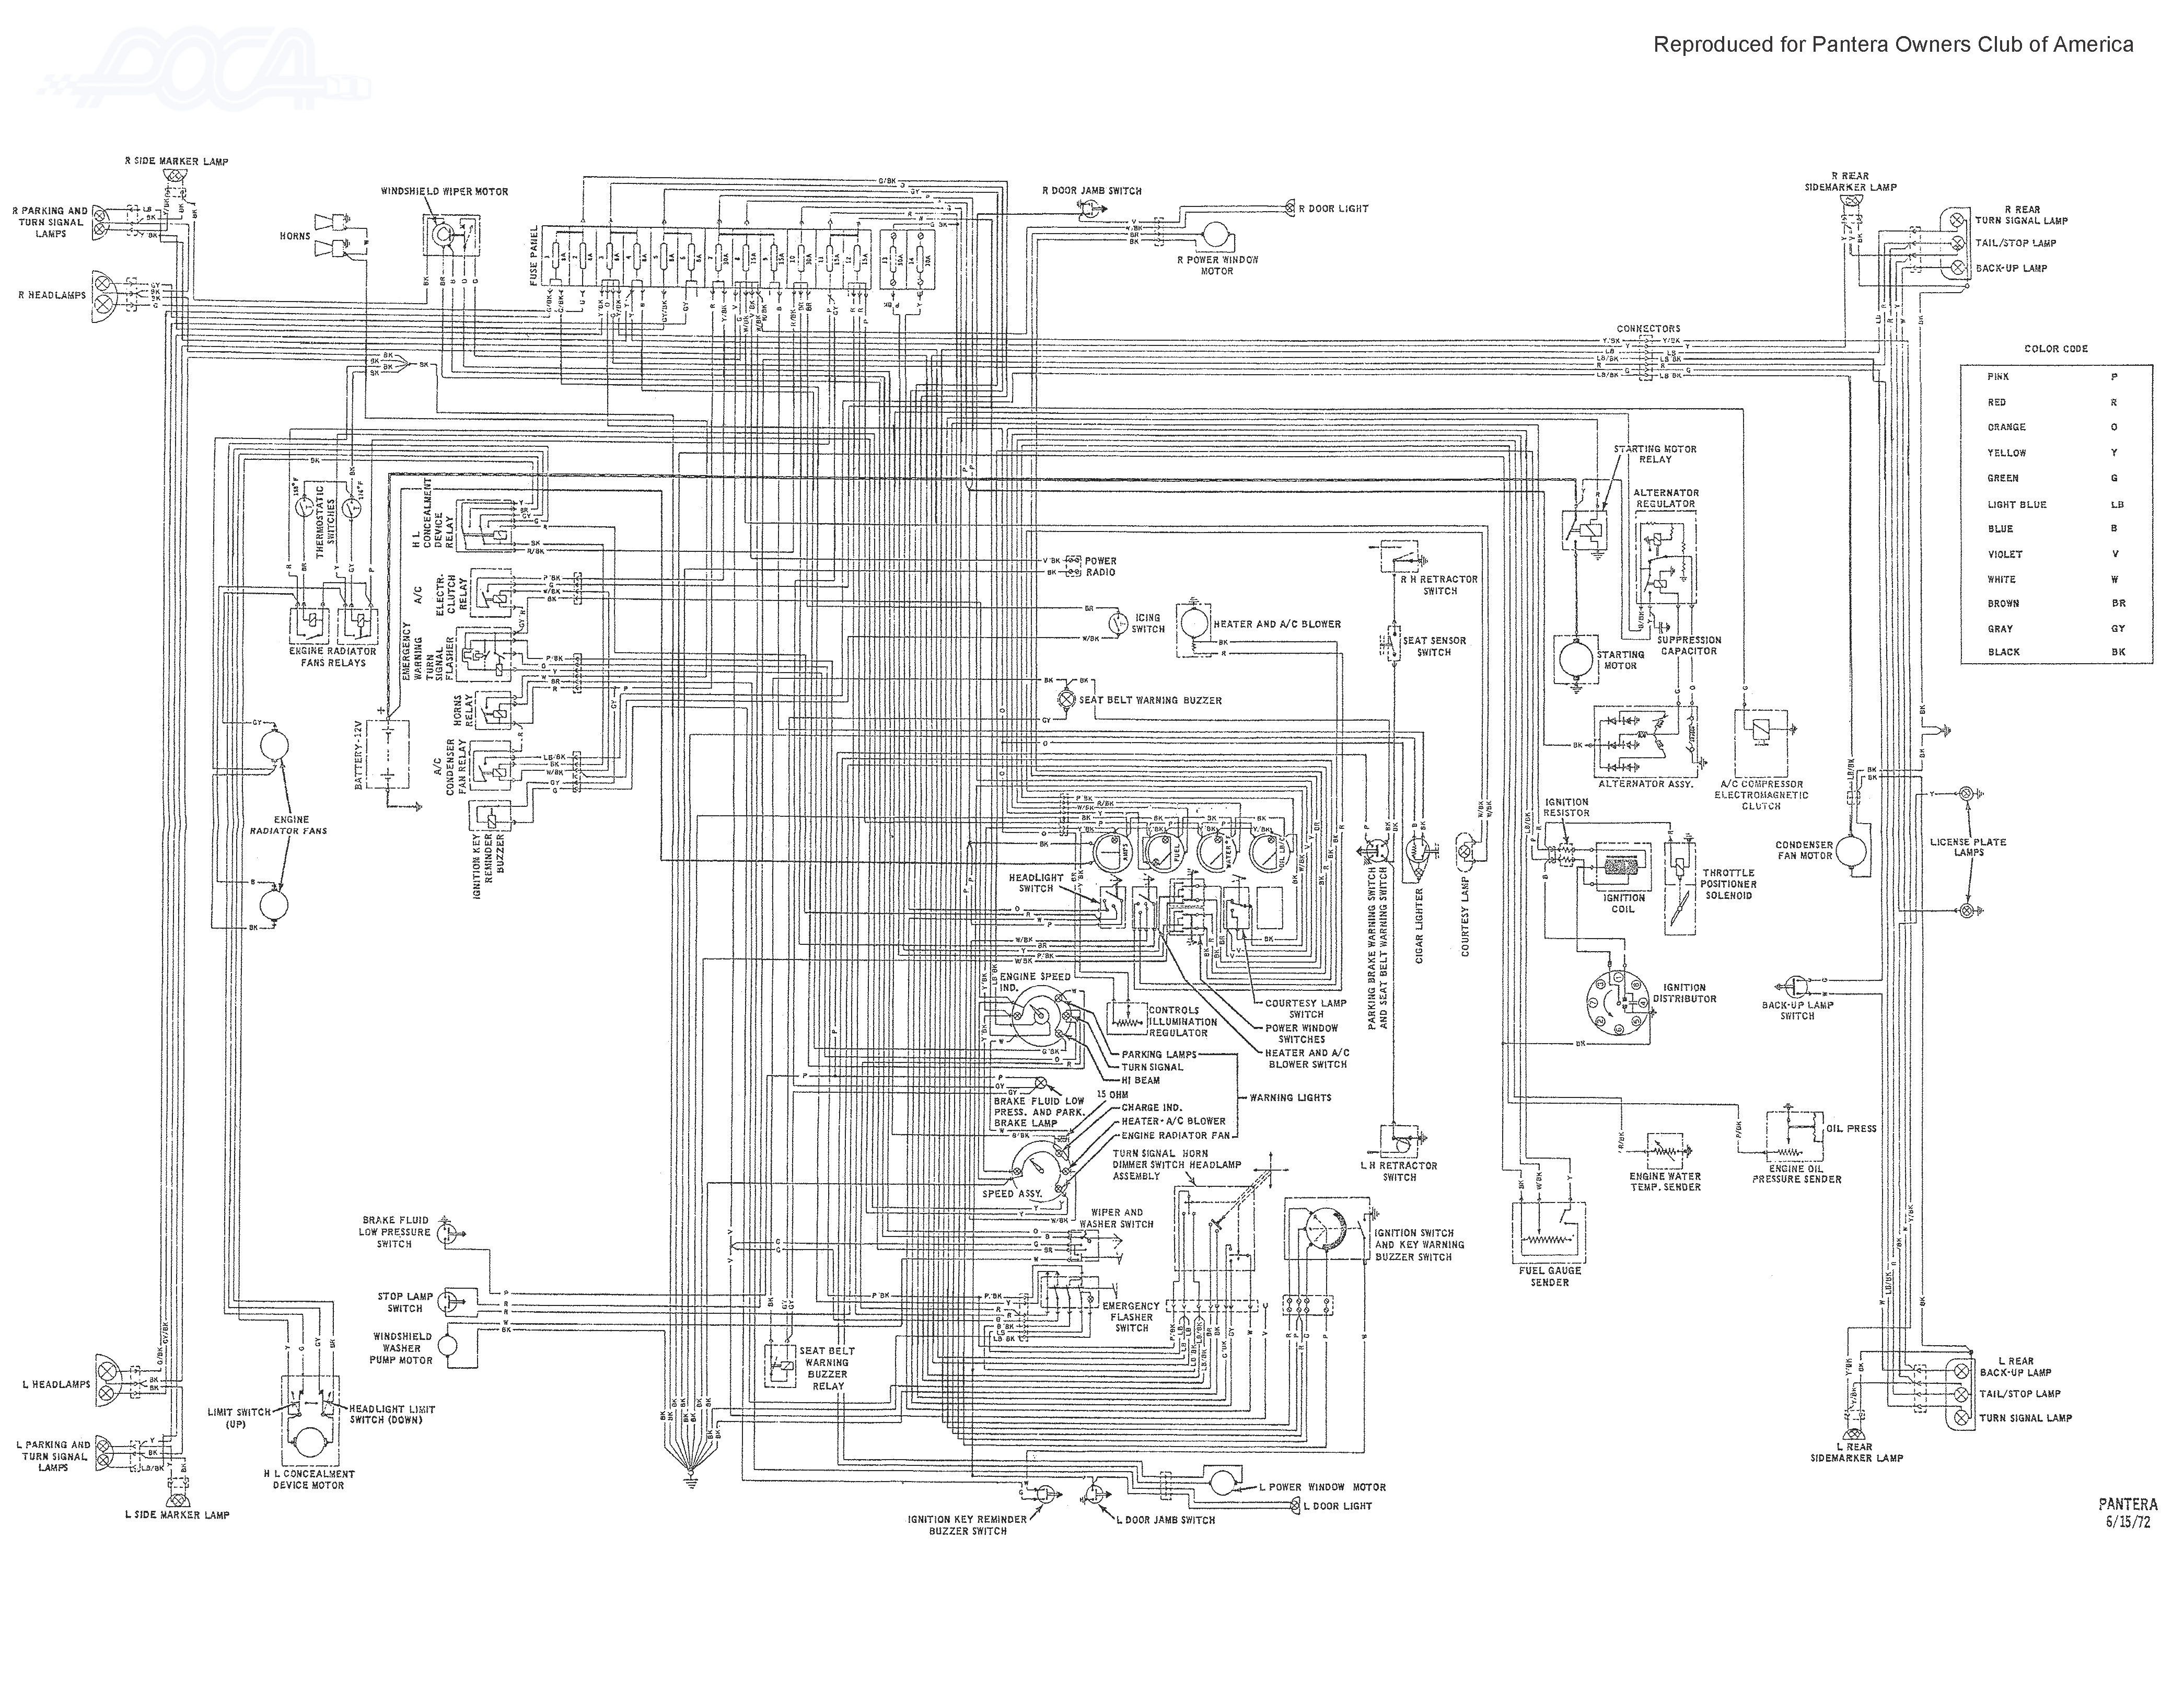 kw t800 wiring diagram - facbooik, Wiring diagram